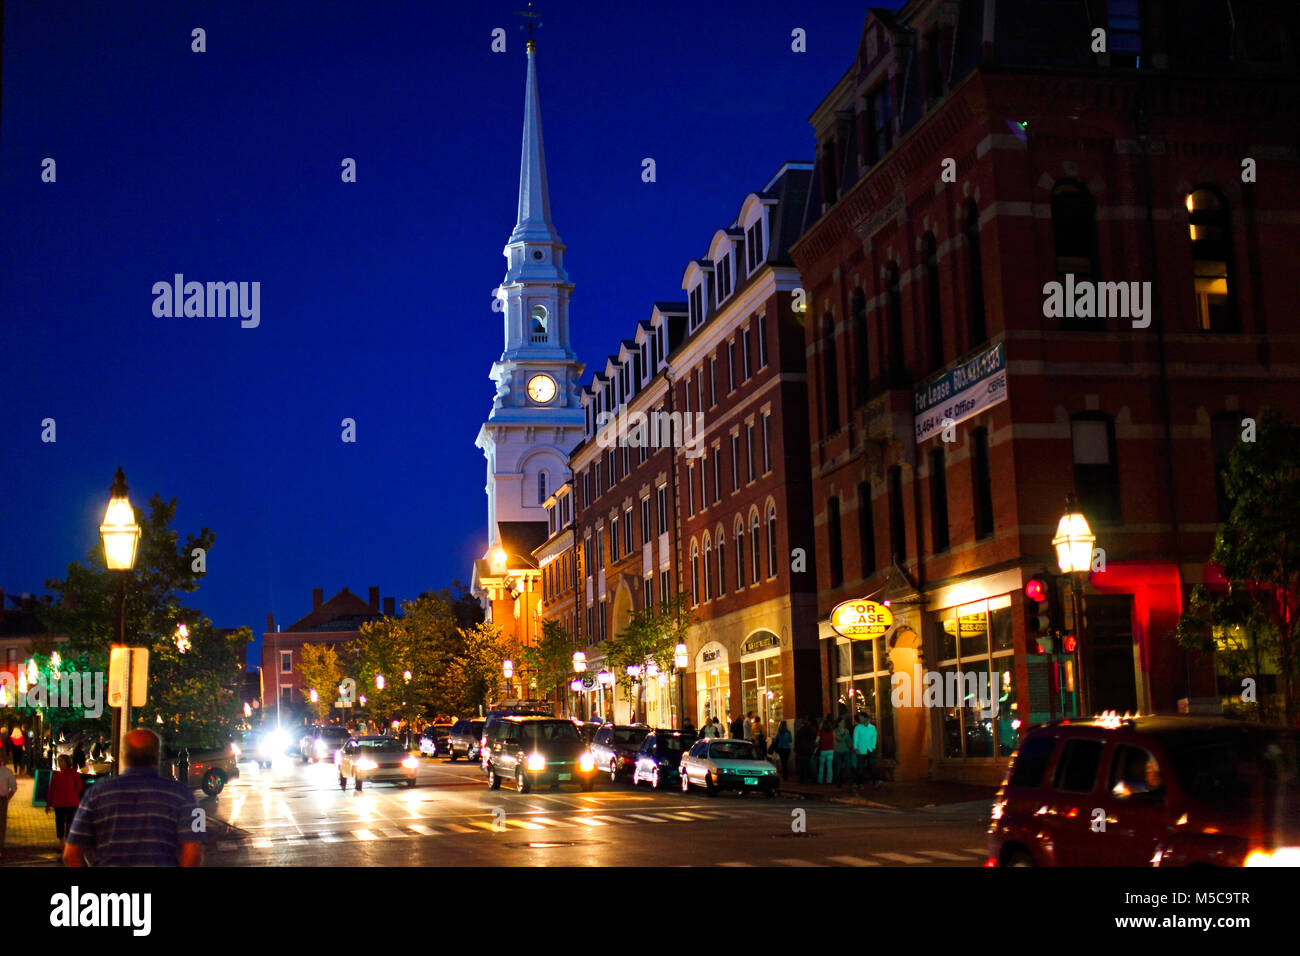 Downtown Portsmouth New Hampshire at night - Stock Image